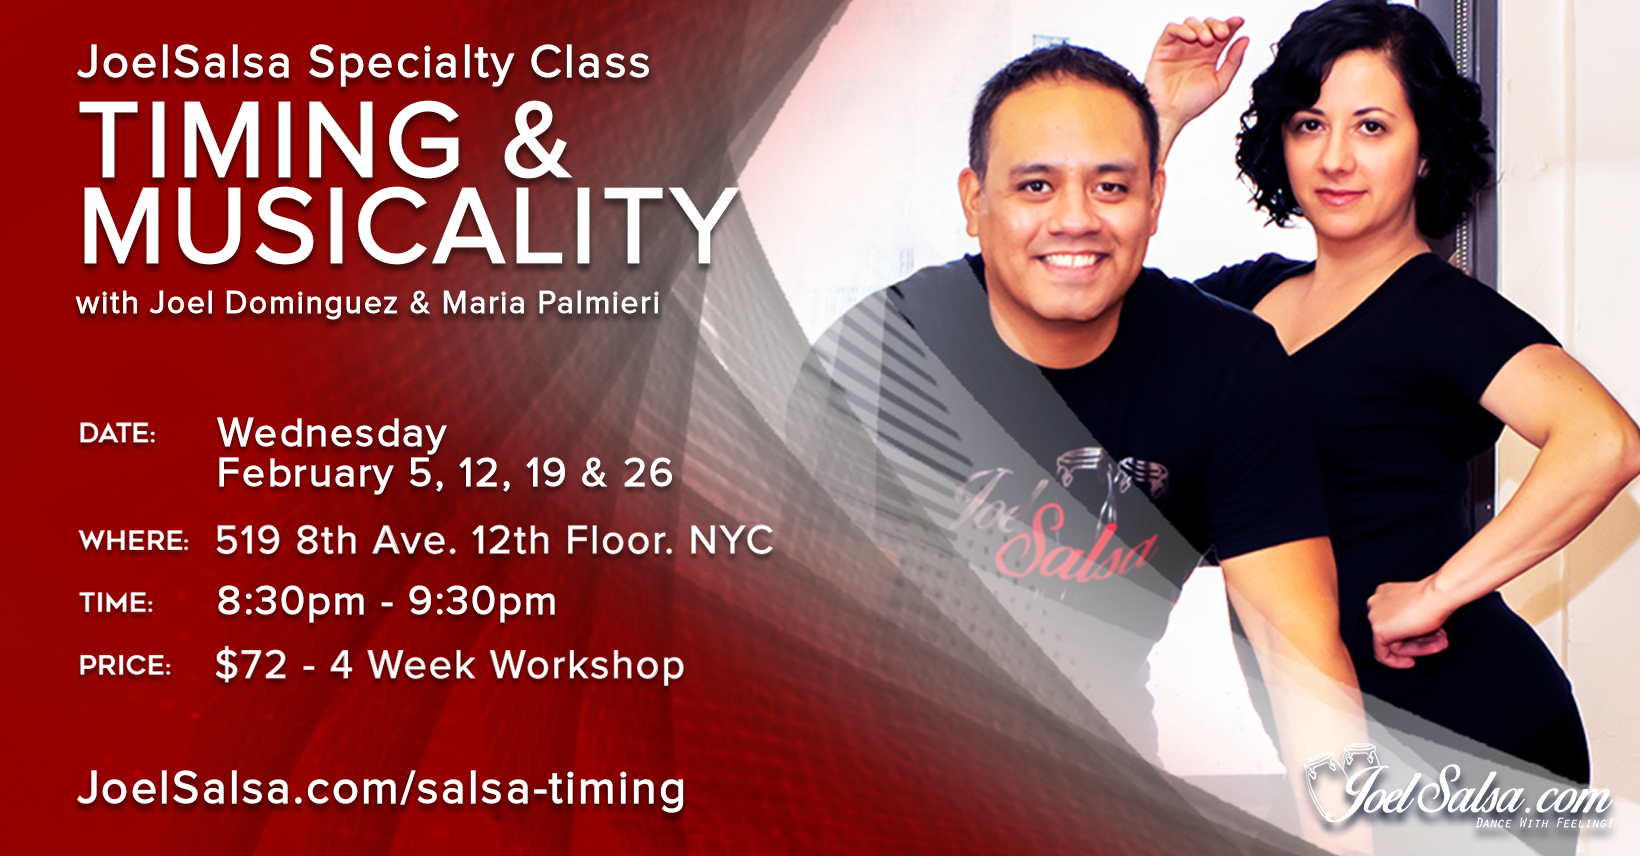 Timing & Musicality with Joel Dominguez & Maria Palmieri